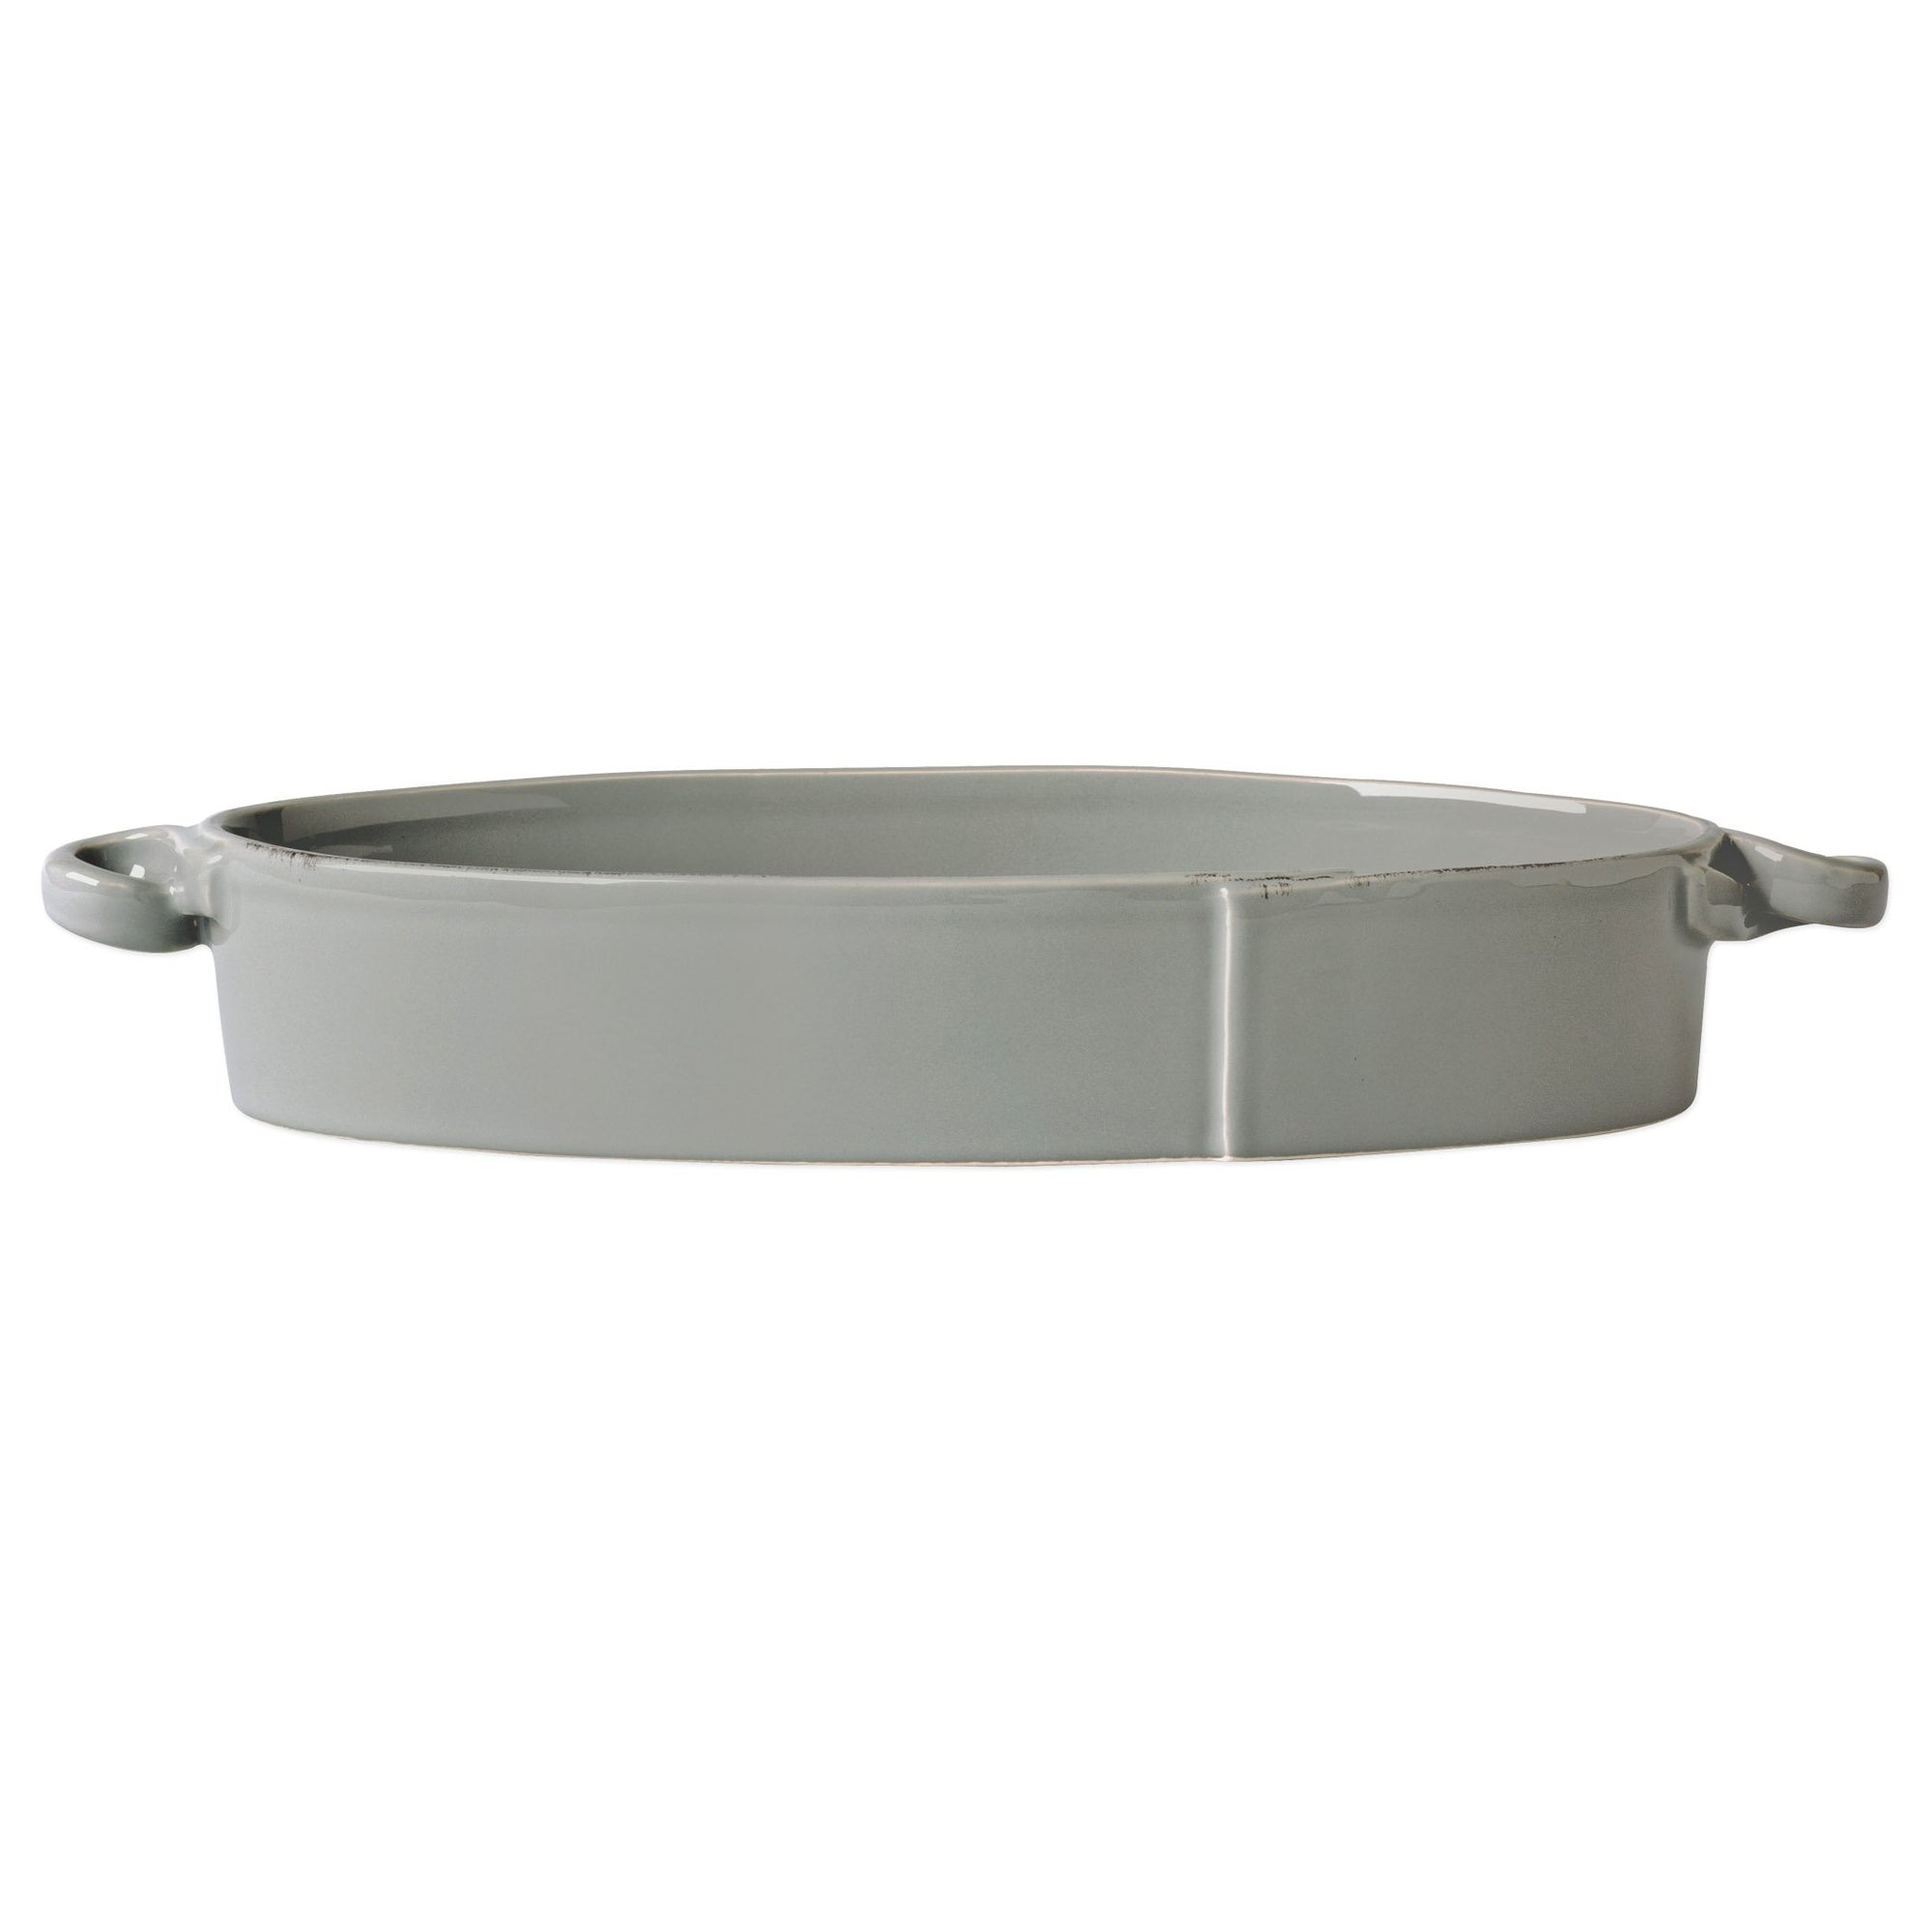 Lastra Gray Handled Oval Baker by VIETRI